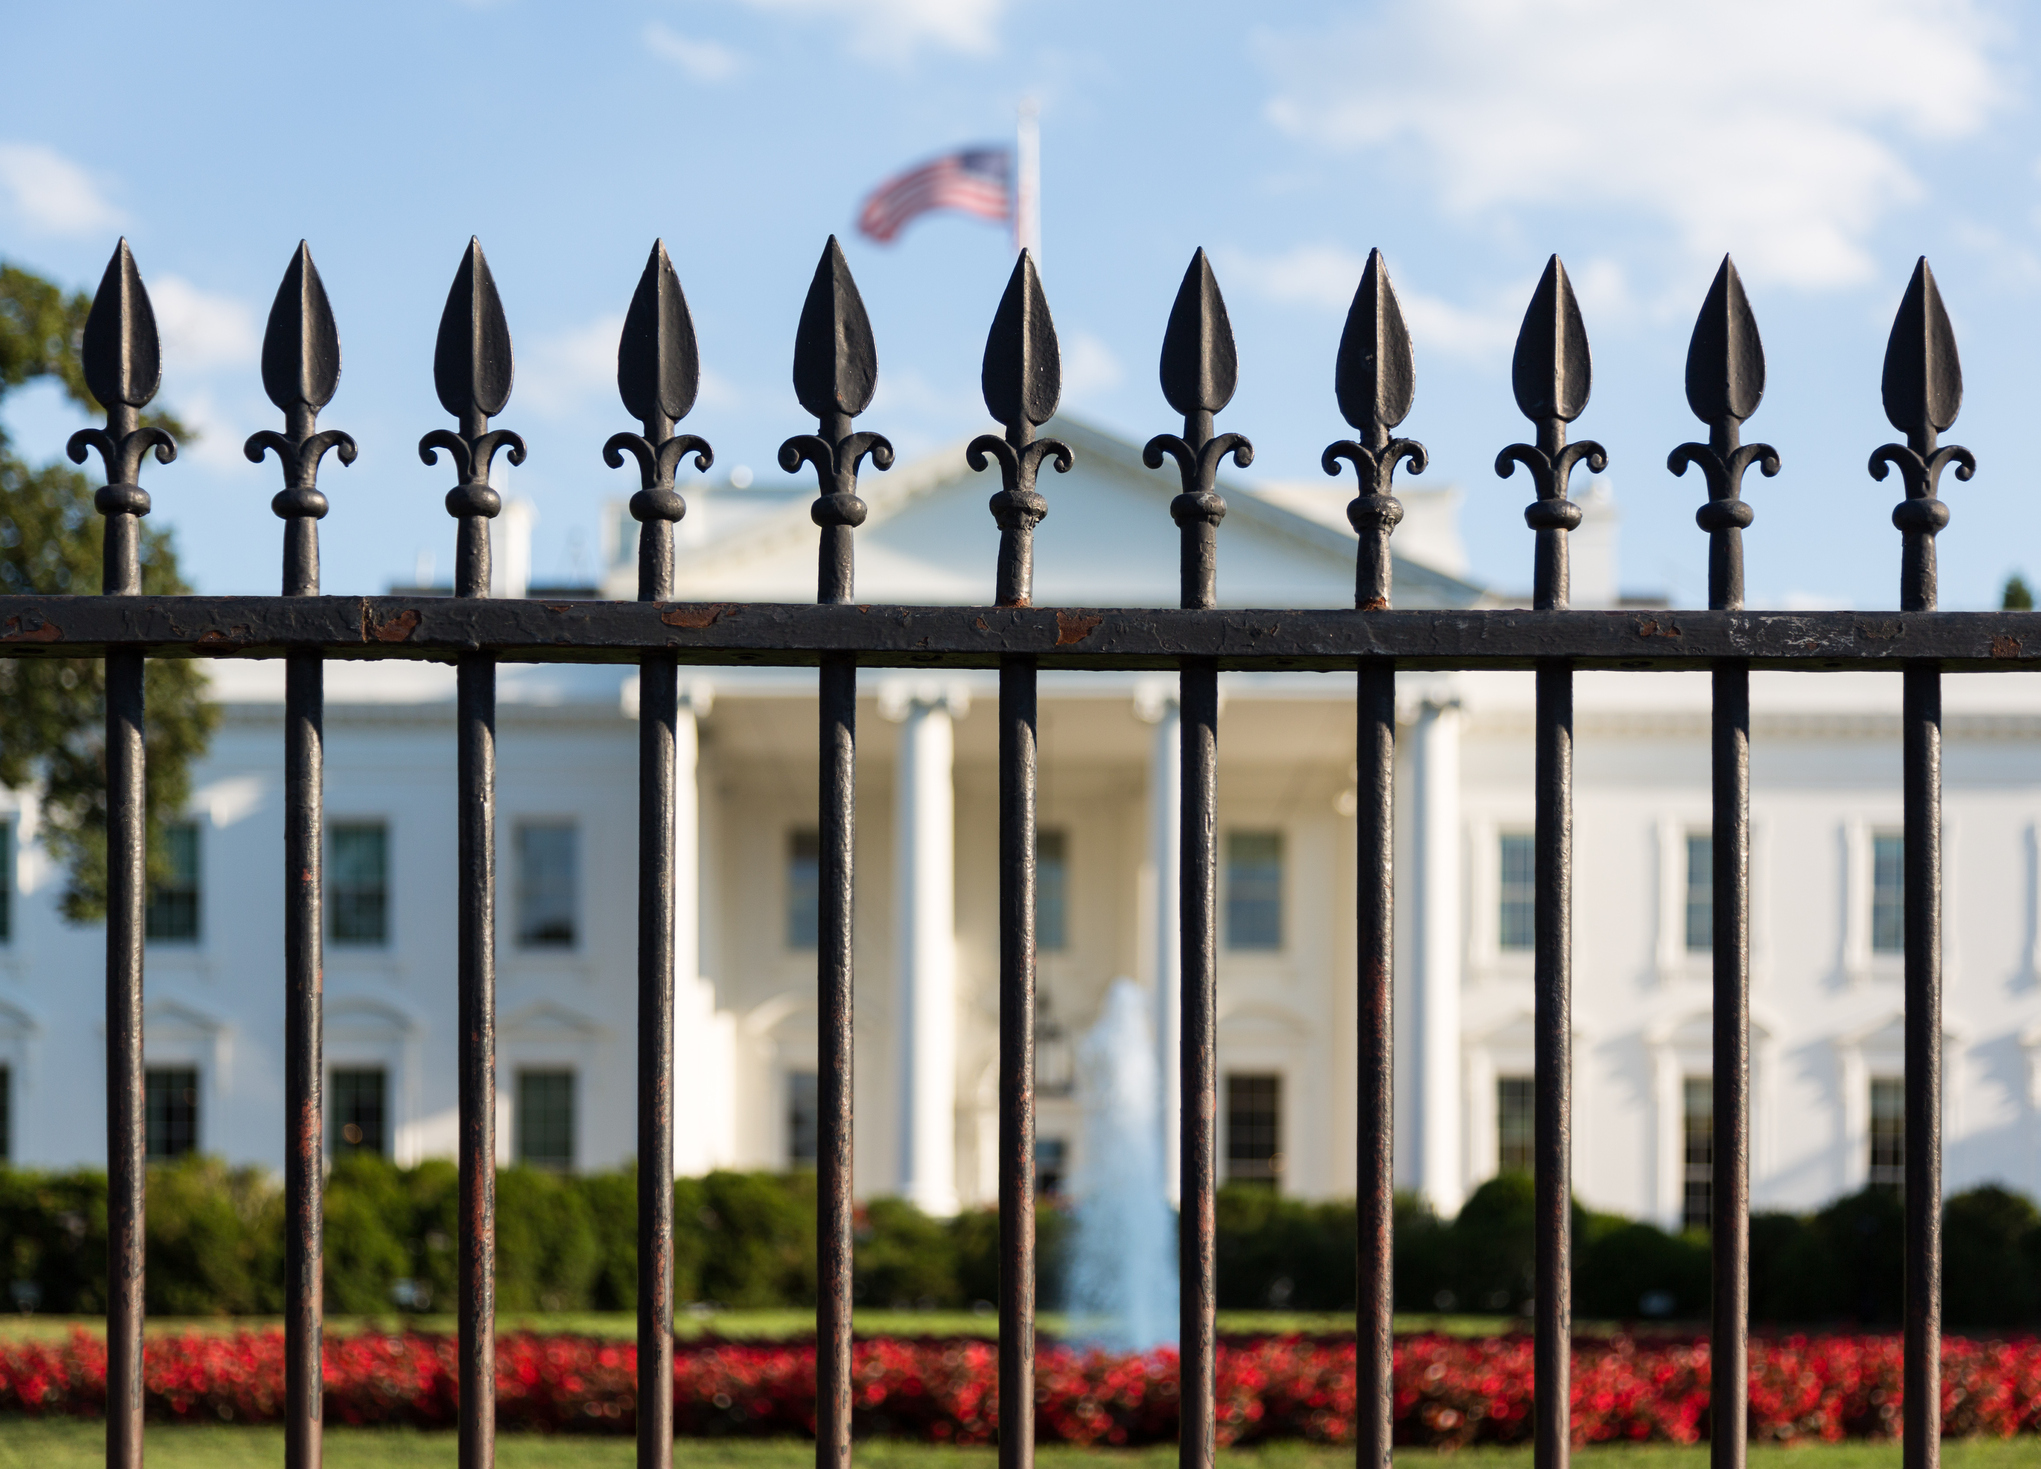 The history of the fence with diamonds